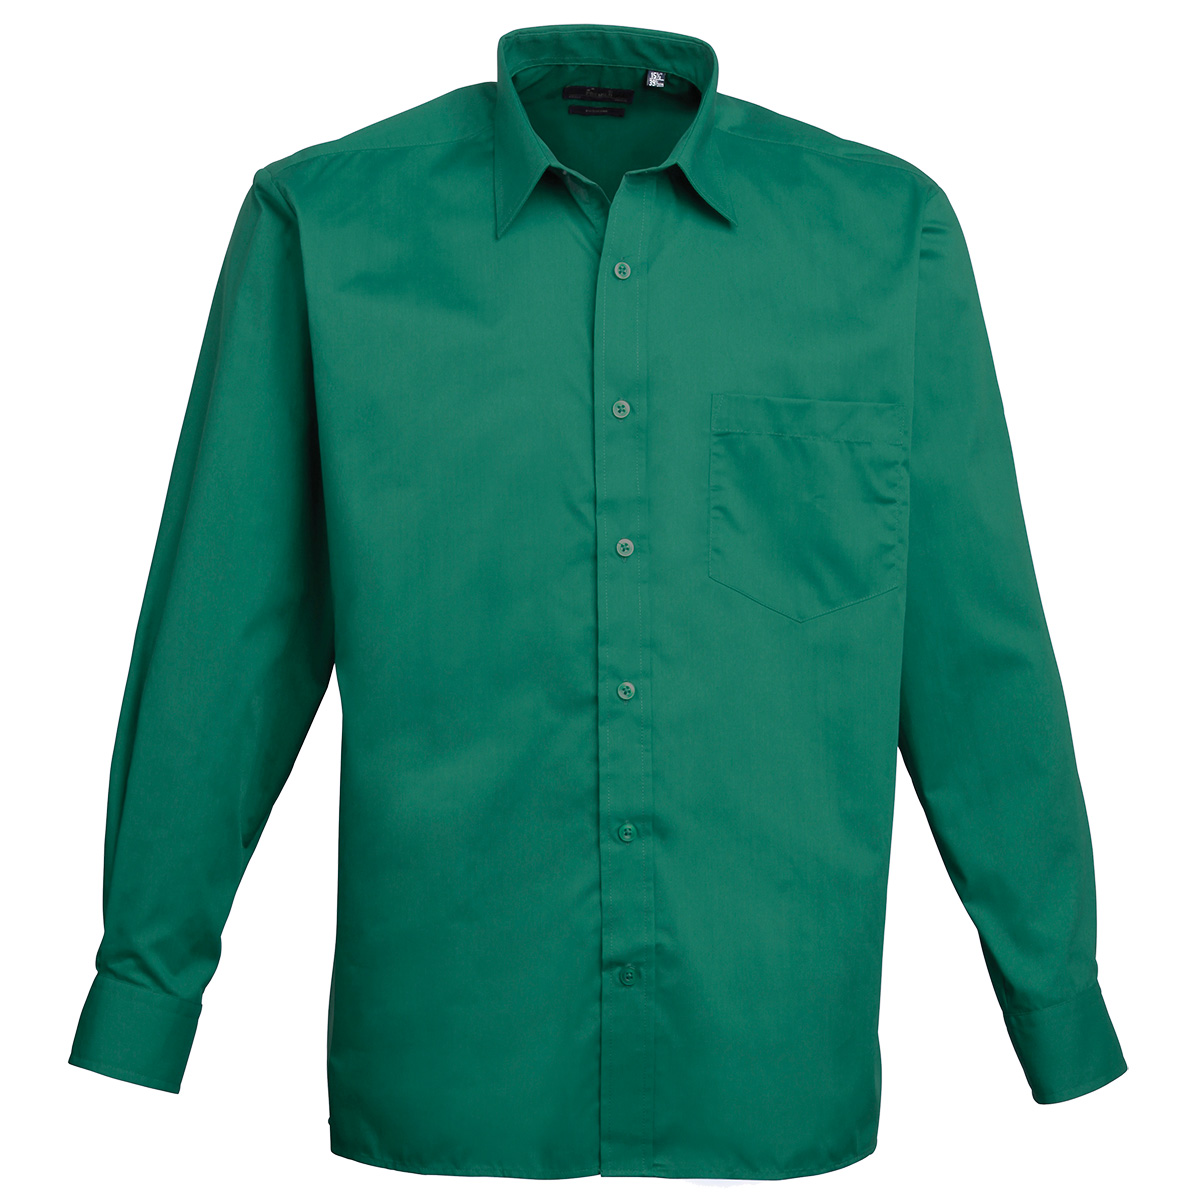 Green long sleeve shirt mens shirts rock Emerald green mens dress shirt